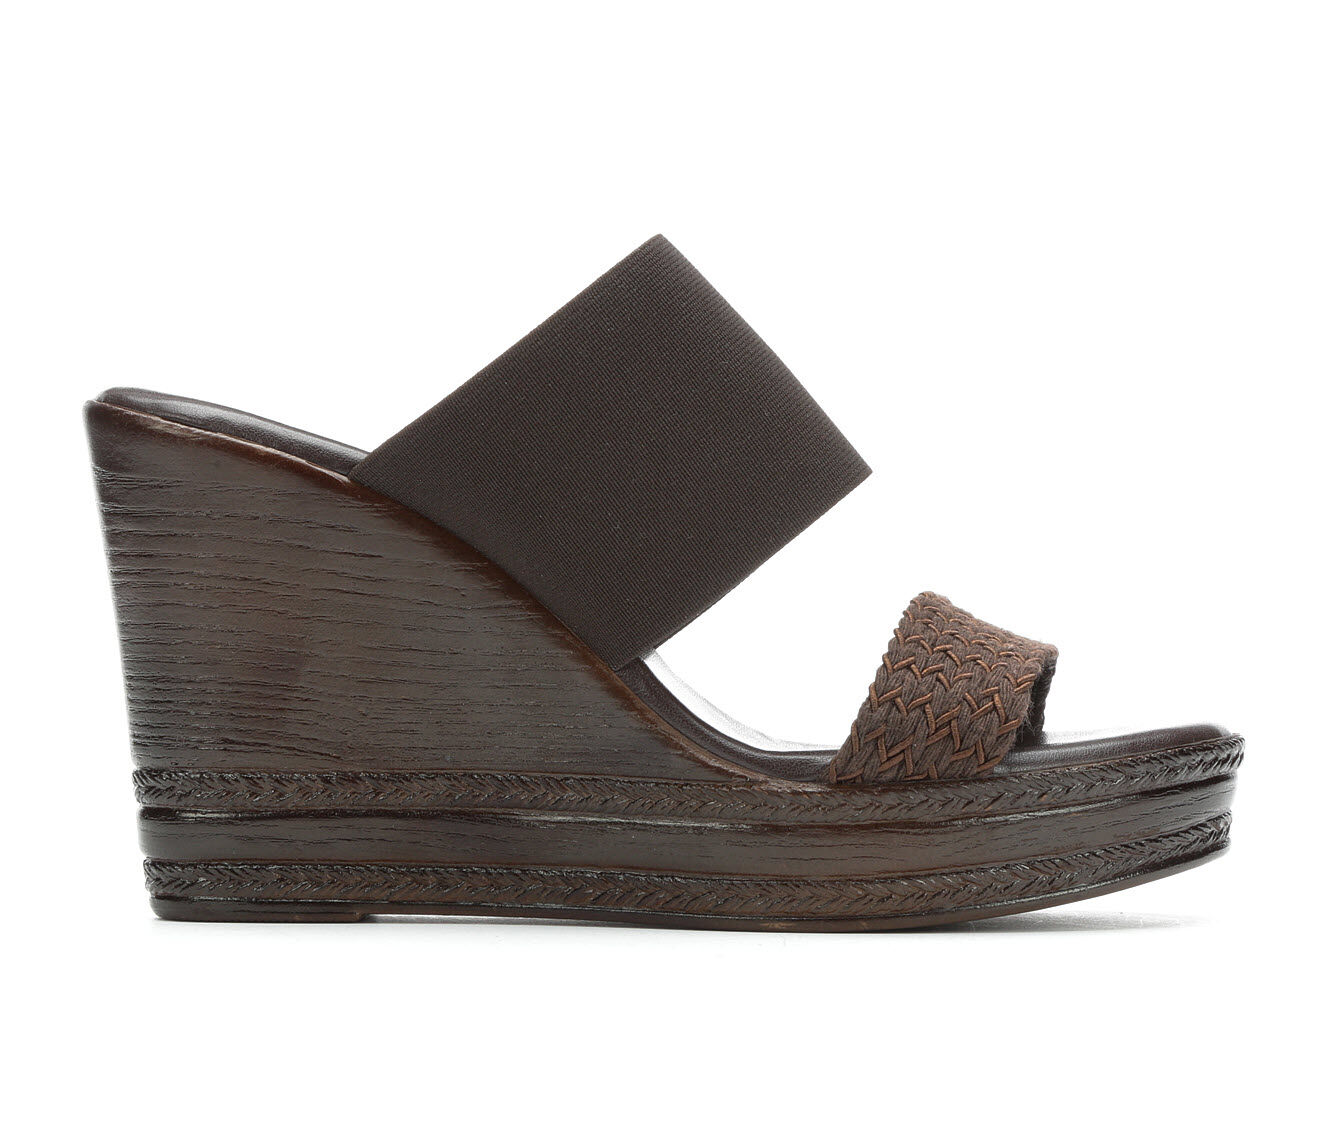 a large variety of Women's Italian Shoemakers Cammi Wedges Chocolate